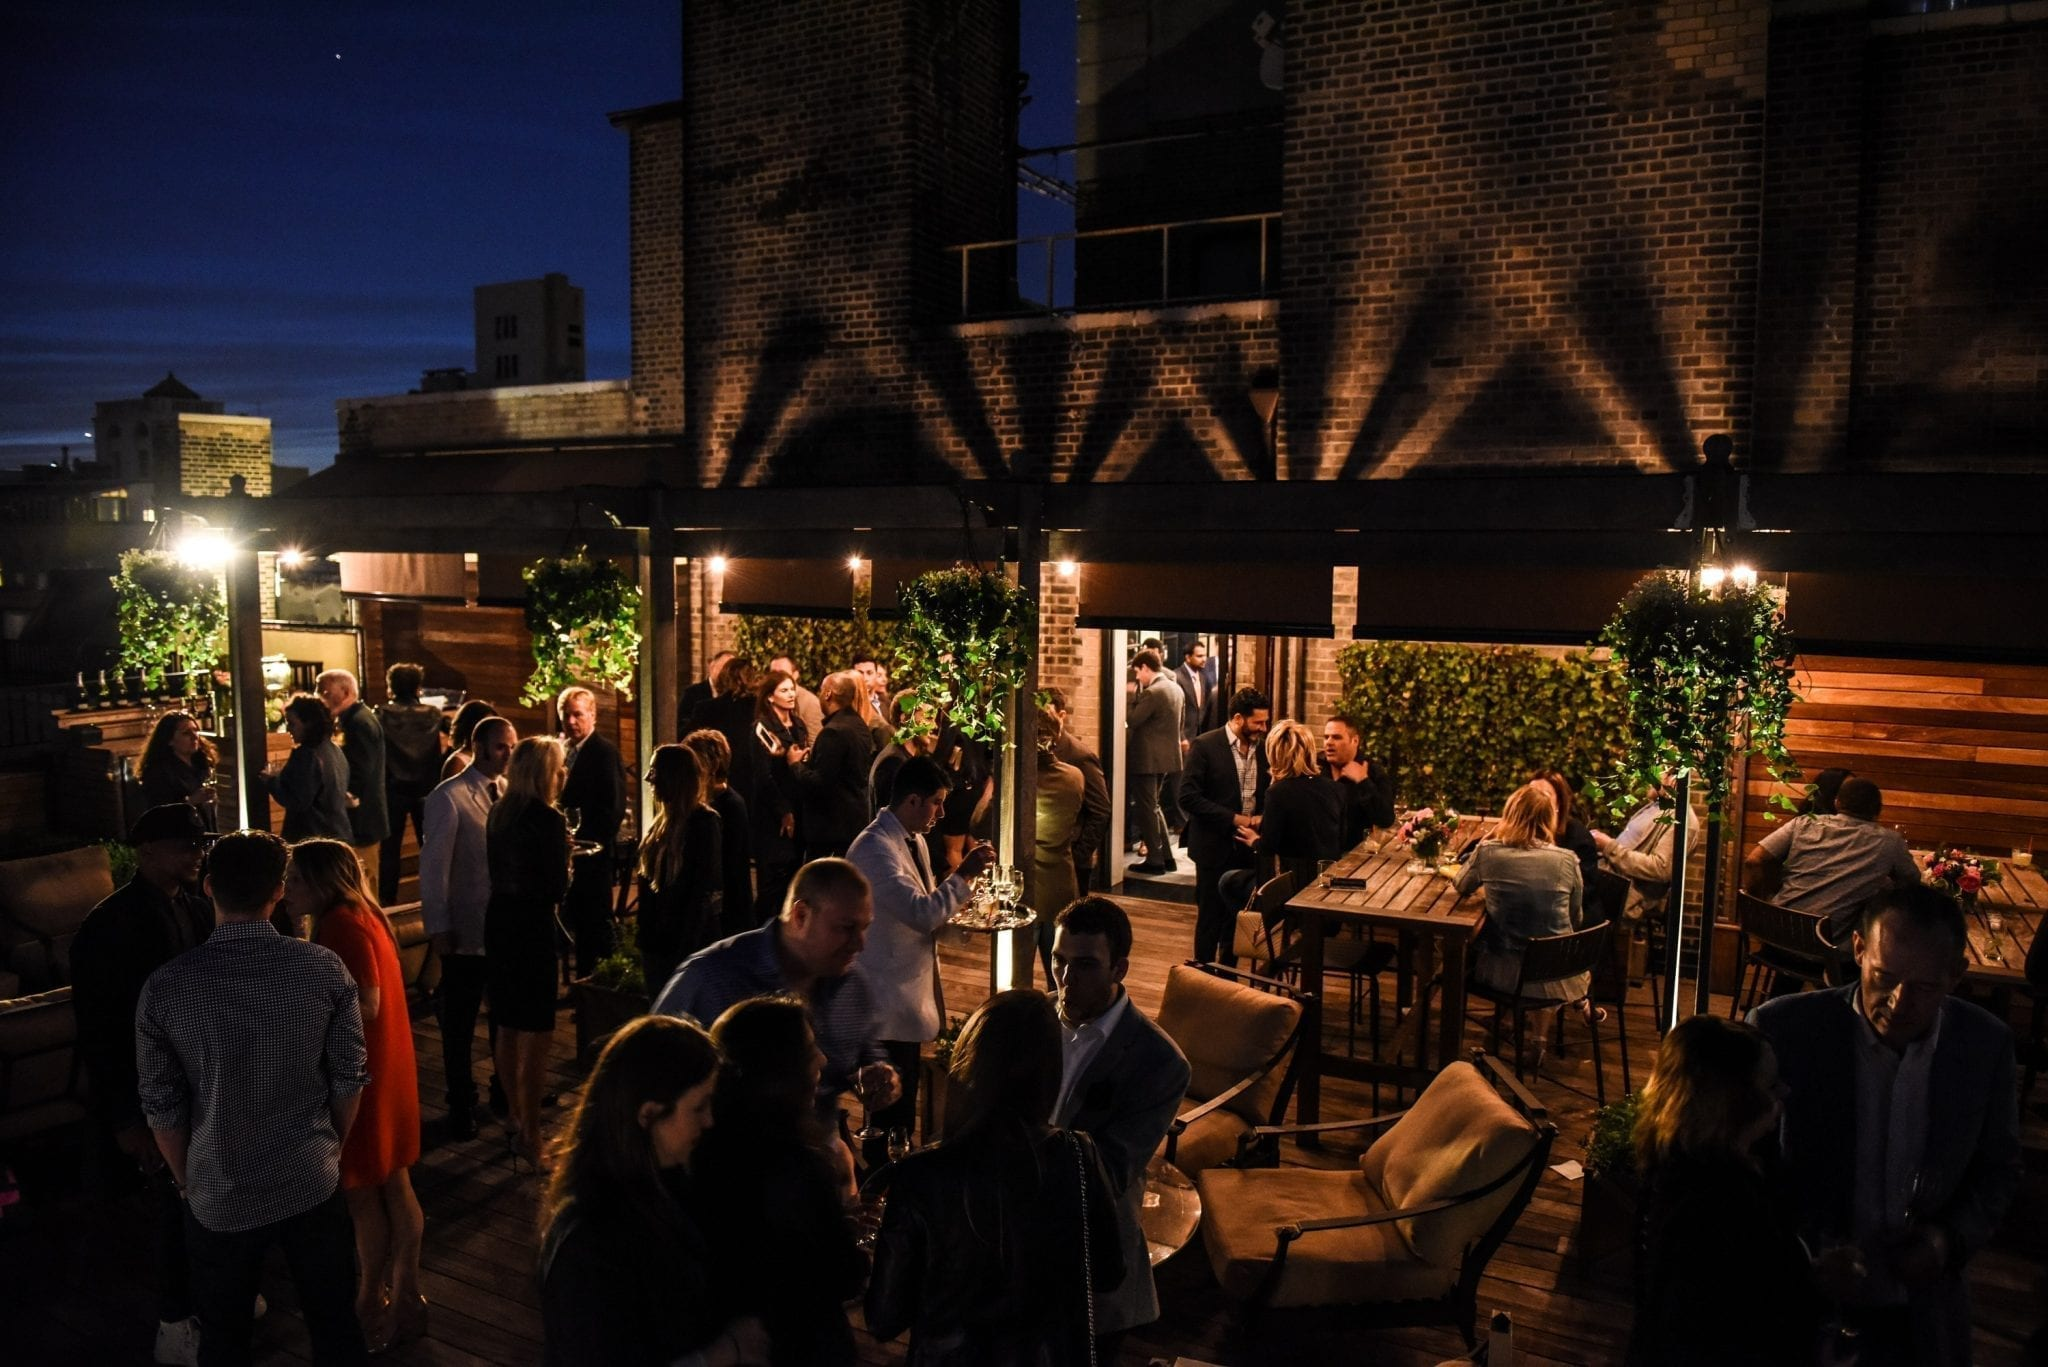 The Surrey Hotel nightlife on the rooftop. The crowd is gathered for a rooftop launch party.